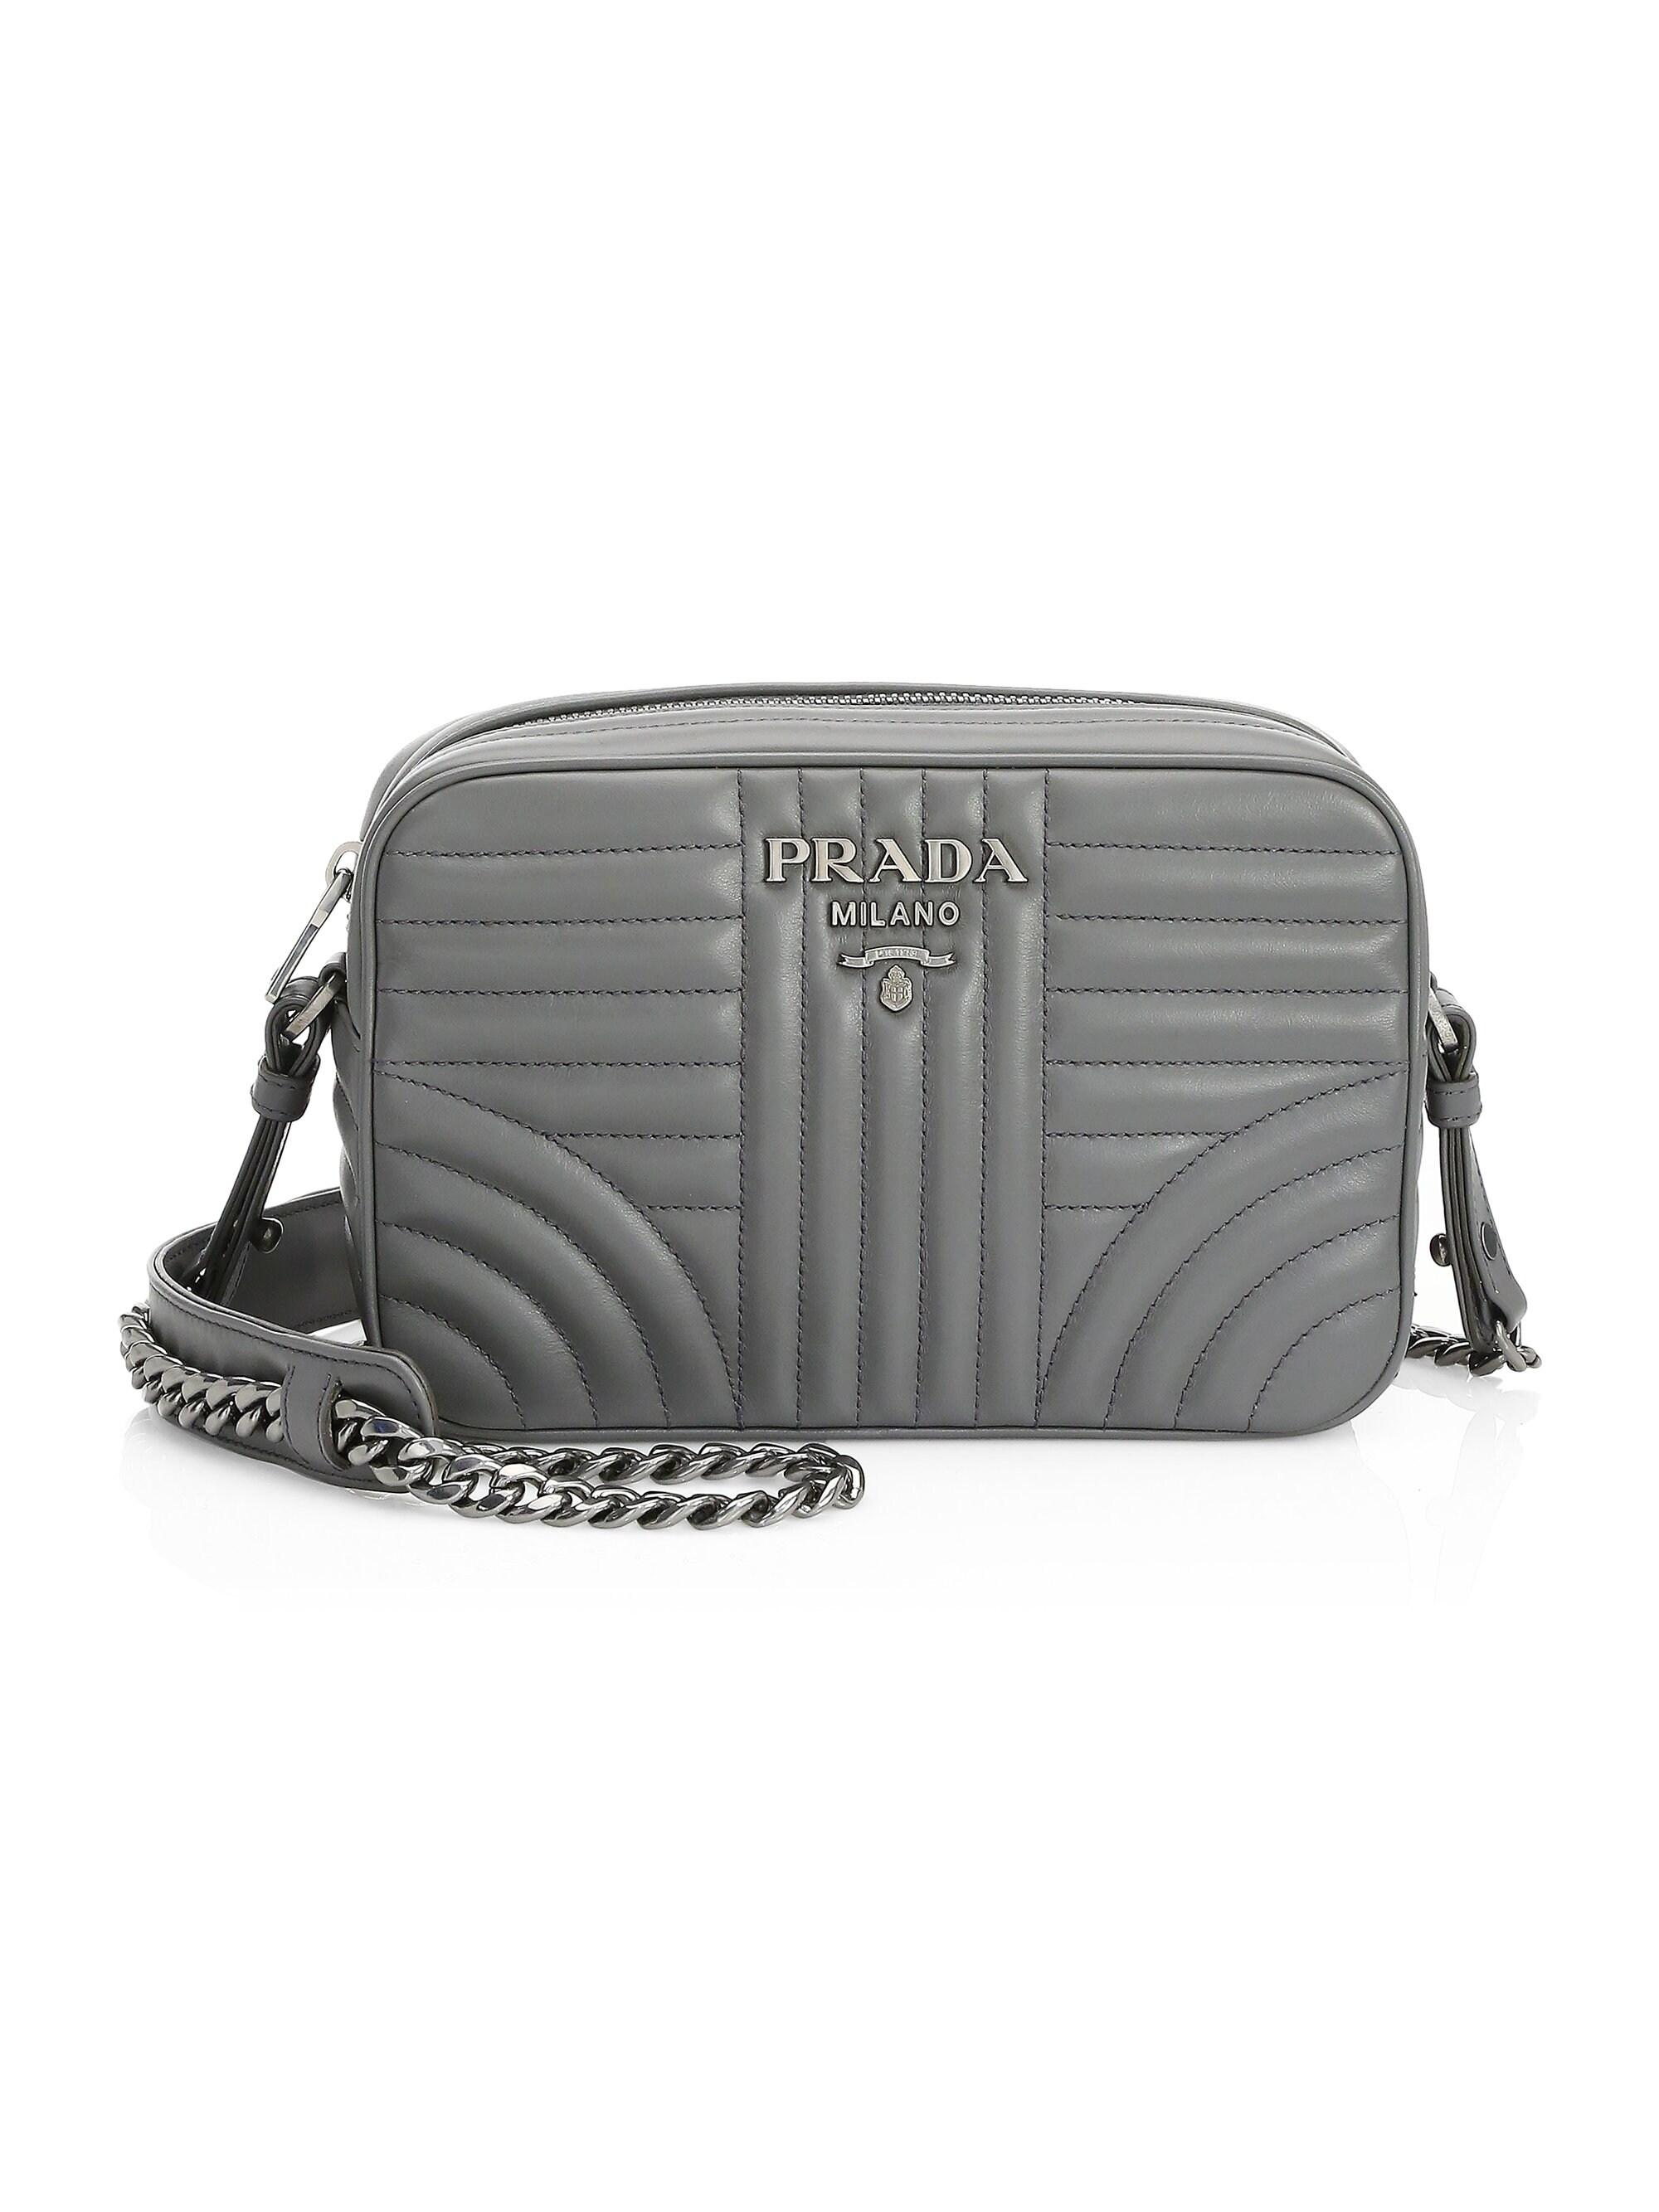 b1002d90b4bfdd Prada Women's Diagramme Camera Bag - Esmeraldo in Gray - Save 45% - Lyst